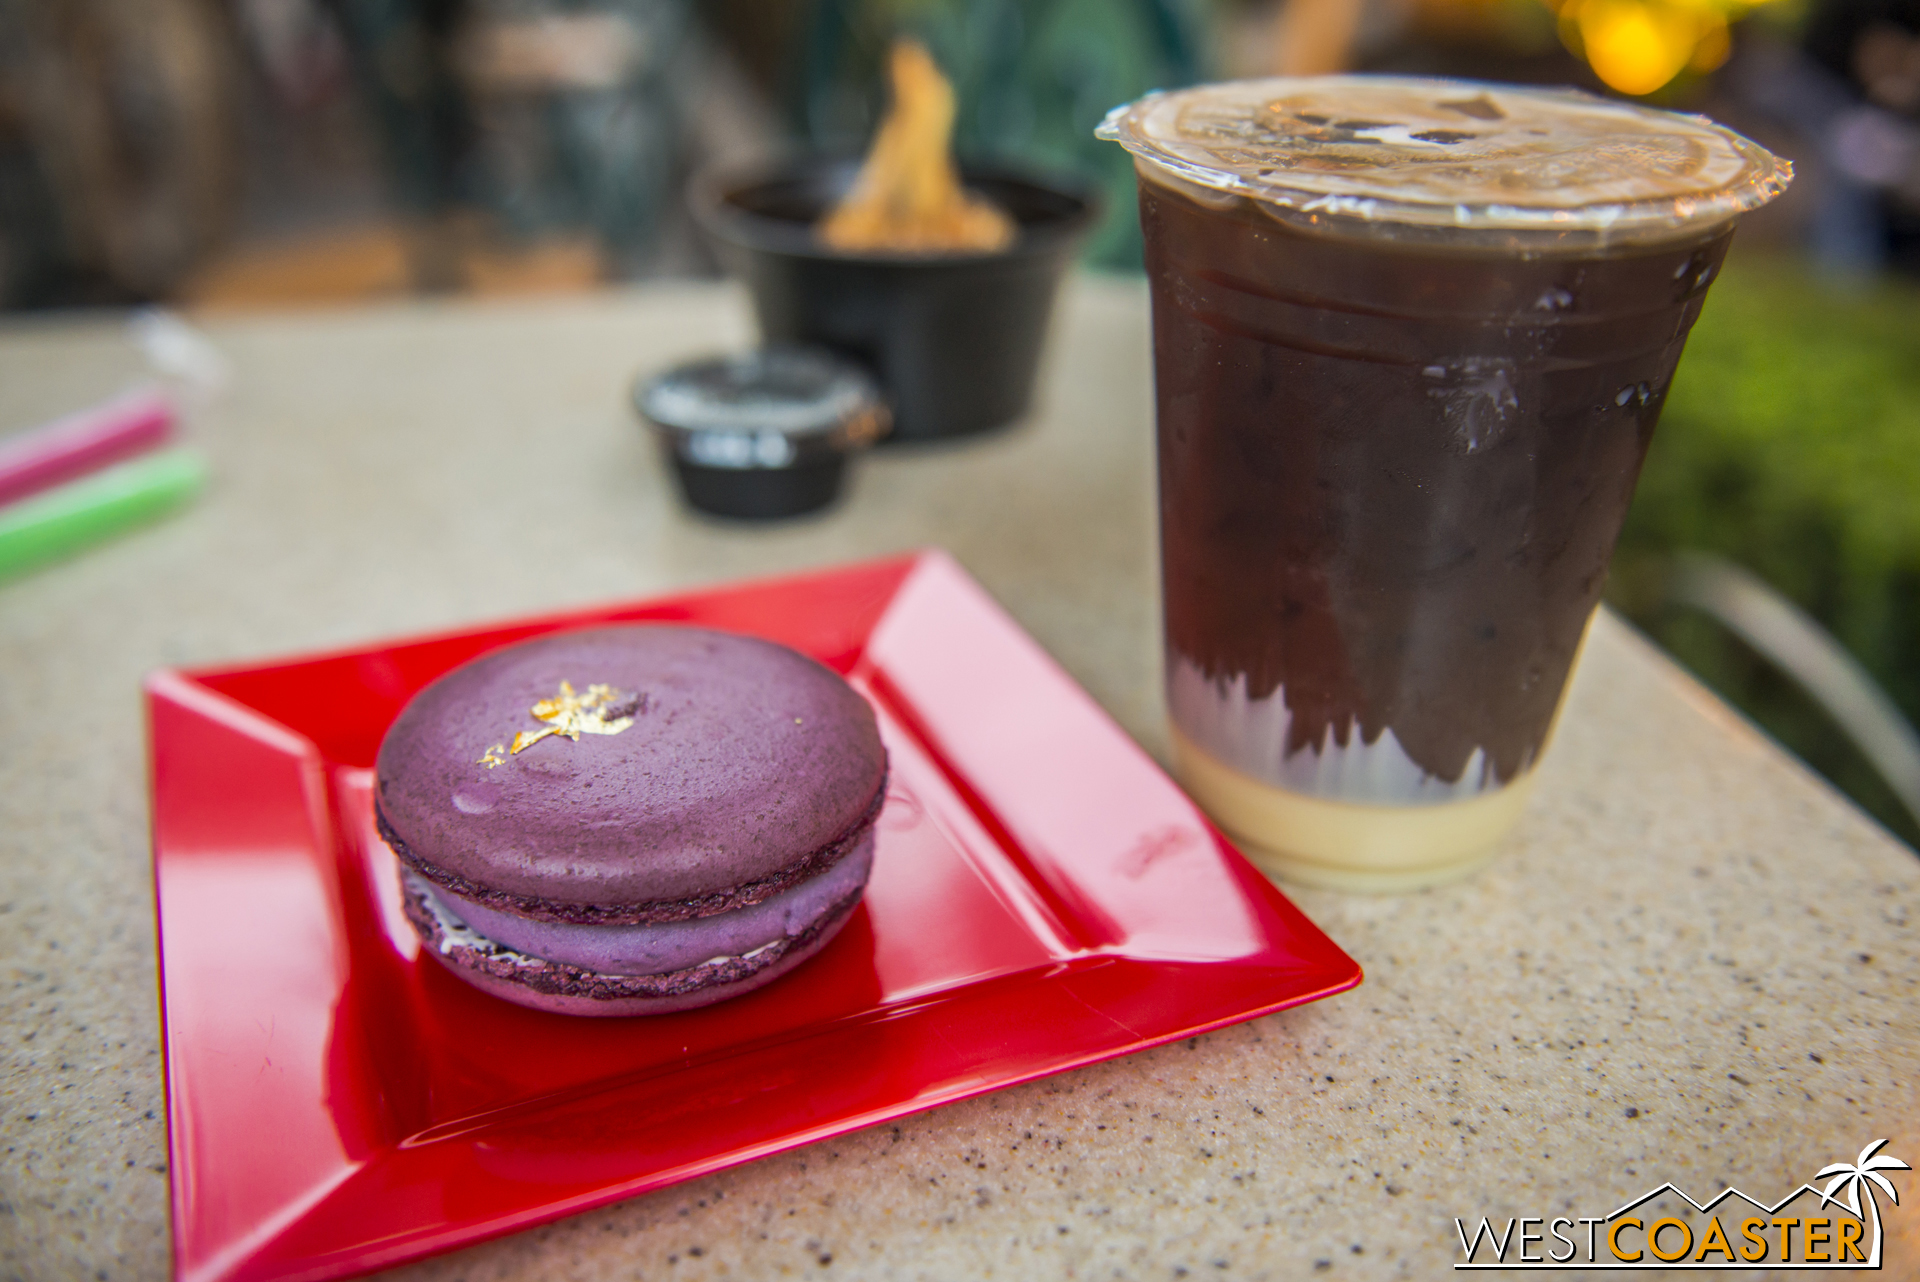 The Purple Sweet Potato Macaron was very tasty, with a particularly sweet berry filling in the middle that I didn't mind, though others may find it a tad too sweet.  The Vietnamese coffee, however, was pretty lackluster compared to Vietnamese coffee I've had outside the park.